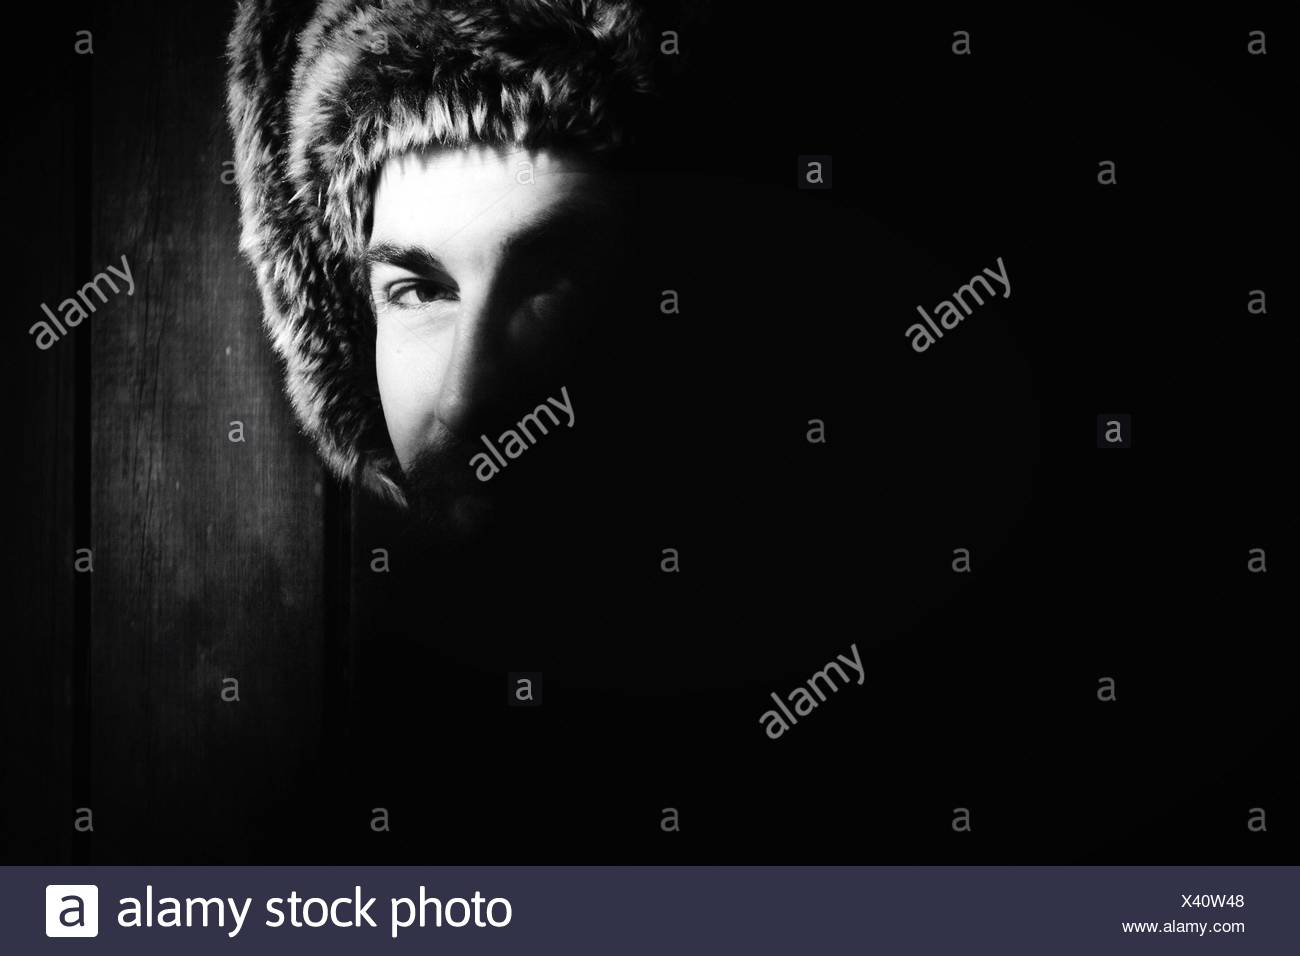 Portrait Of Man With Fur Capon Head - Stock Image